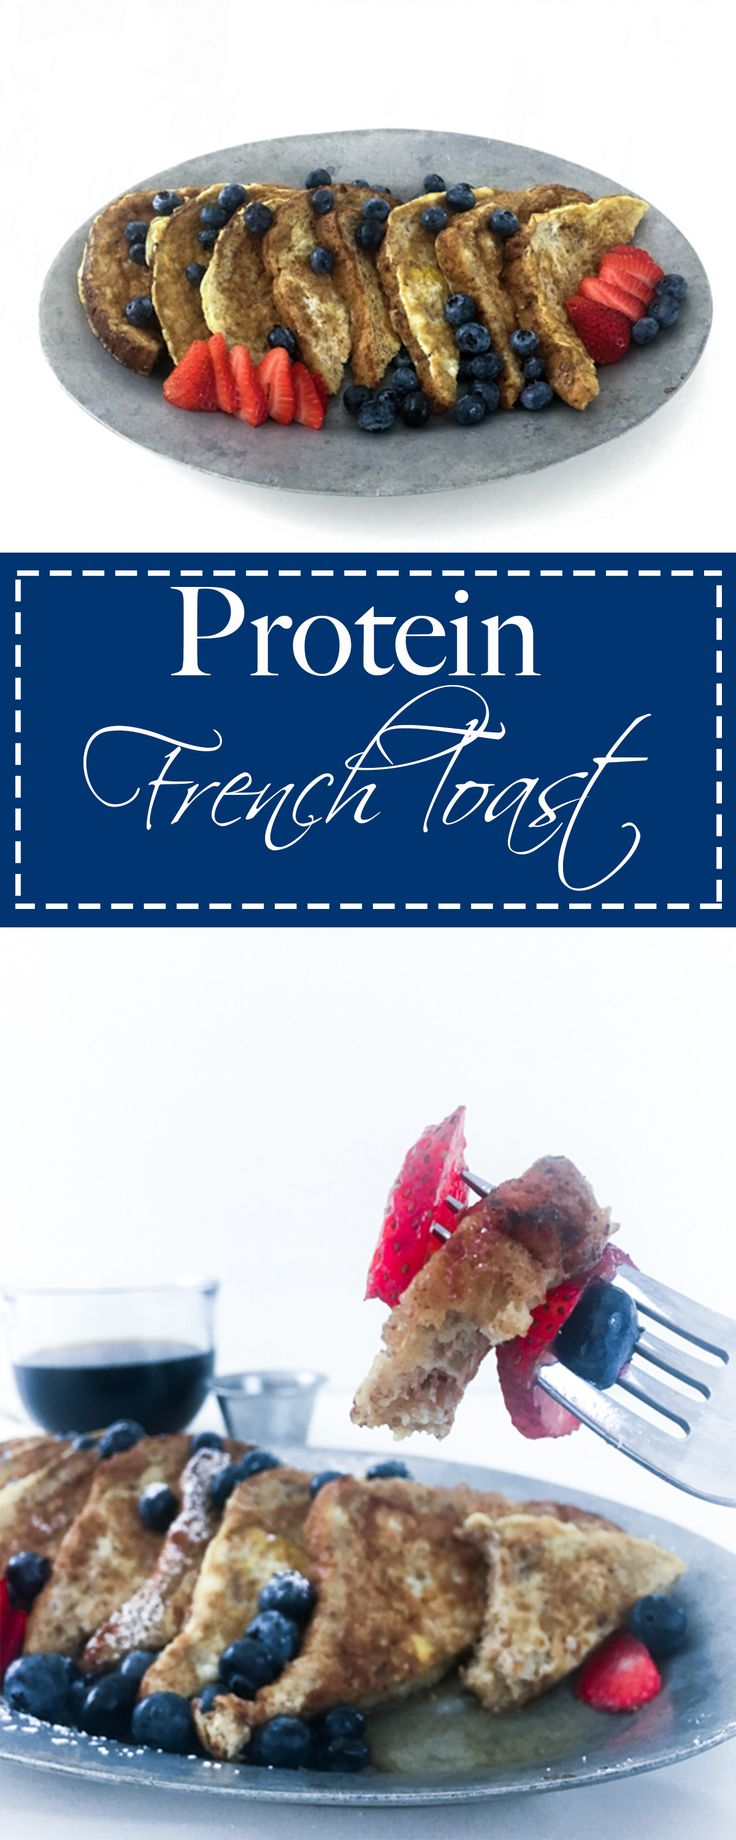 Don't miss out on this updated classic. French toast that is full of protein and all the good things for you!